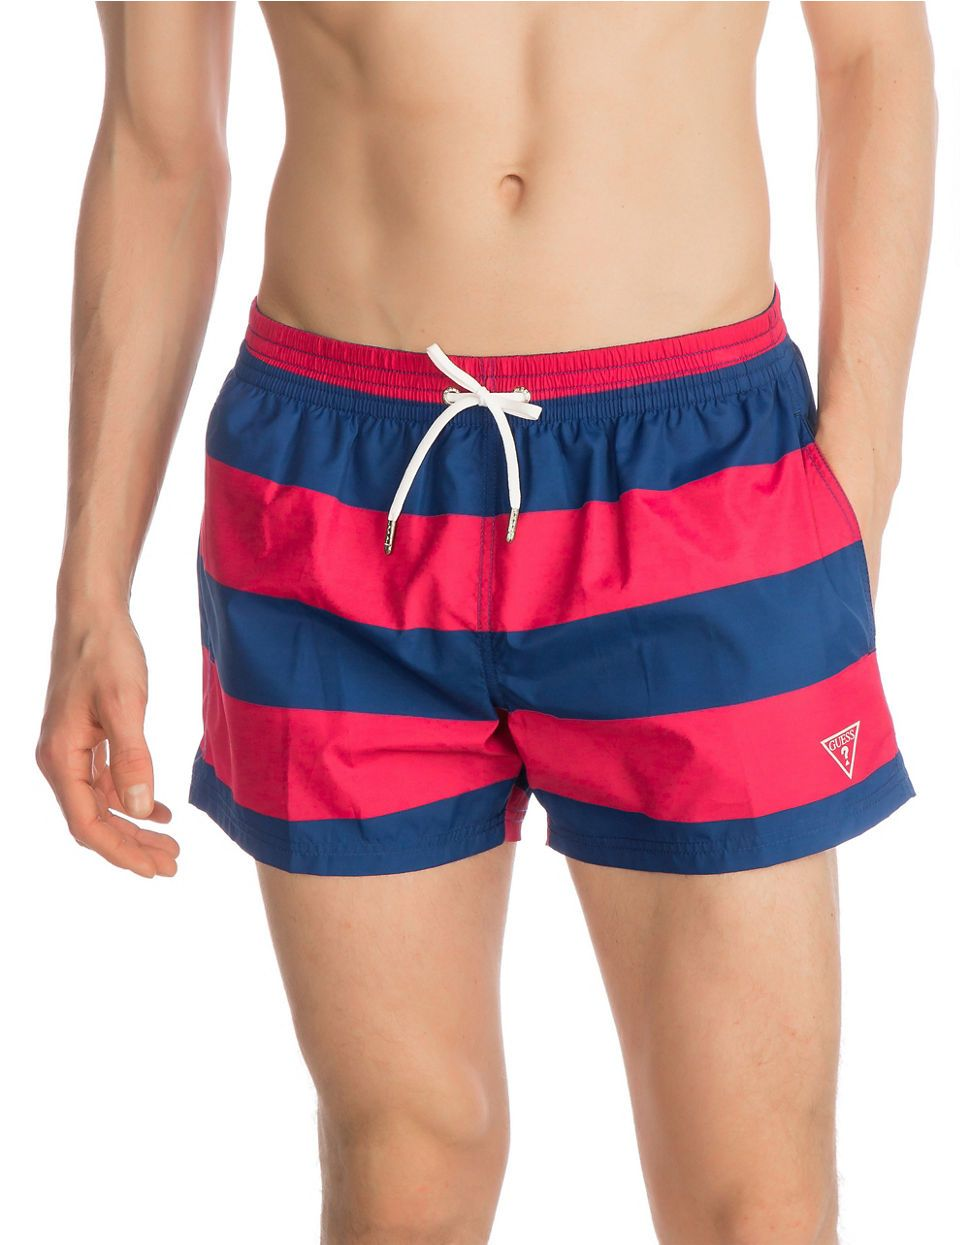 a891bfa9c8d82 Marques | Maillots de bain | Woven Printed Short Swim Trunks | La Baie D'